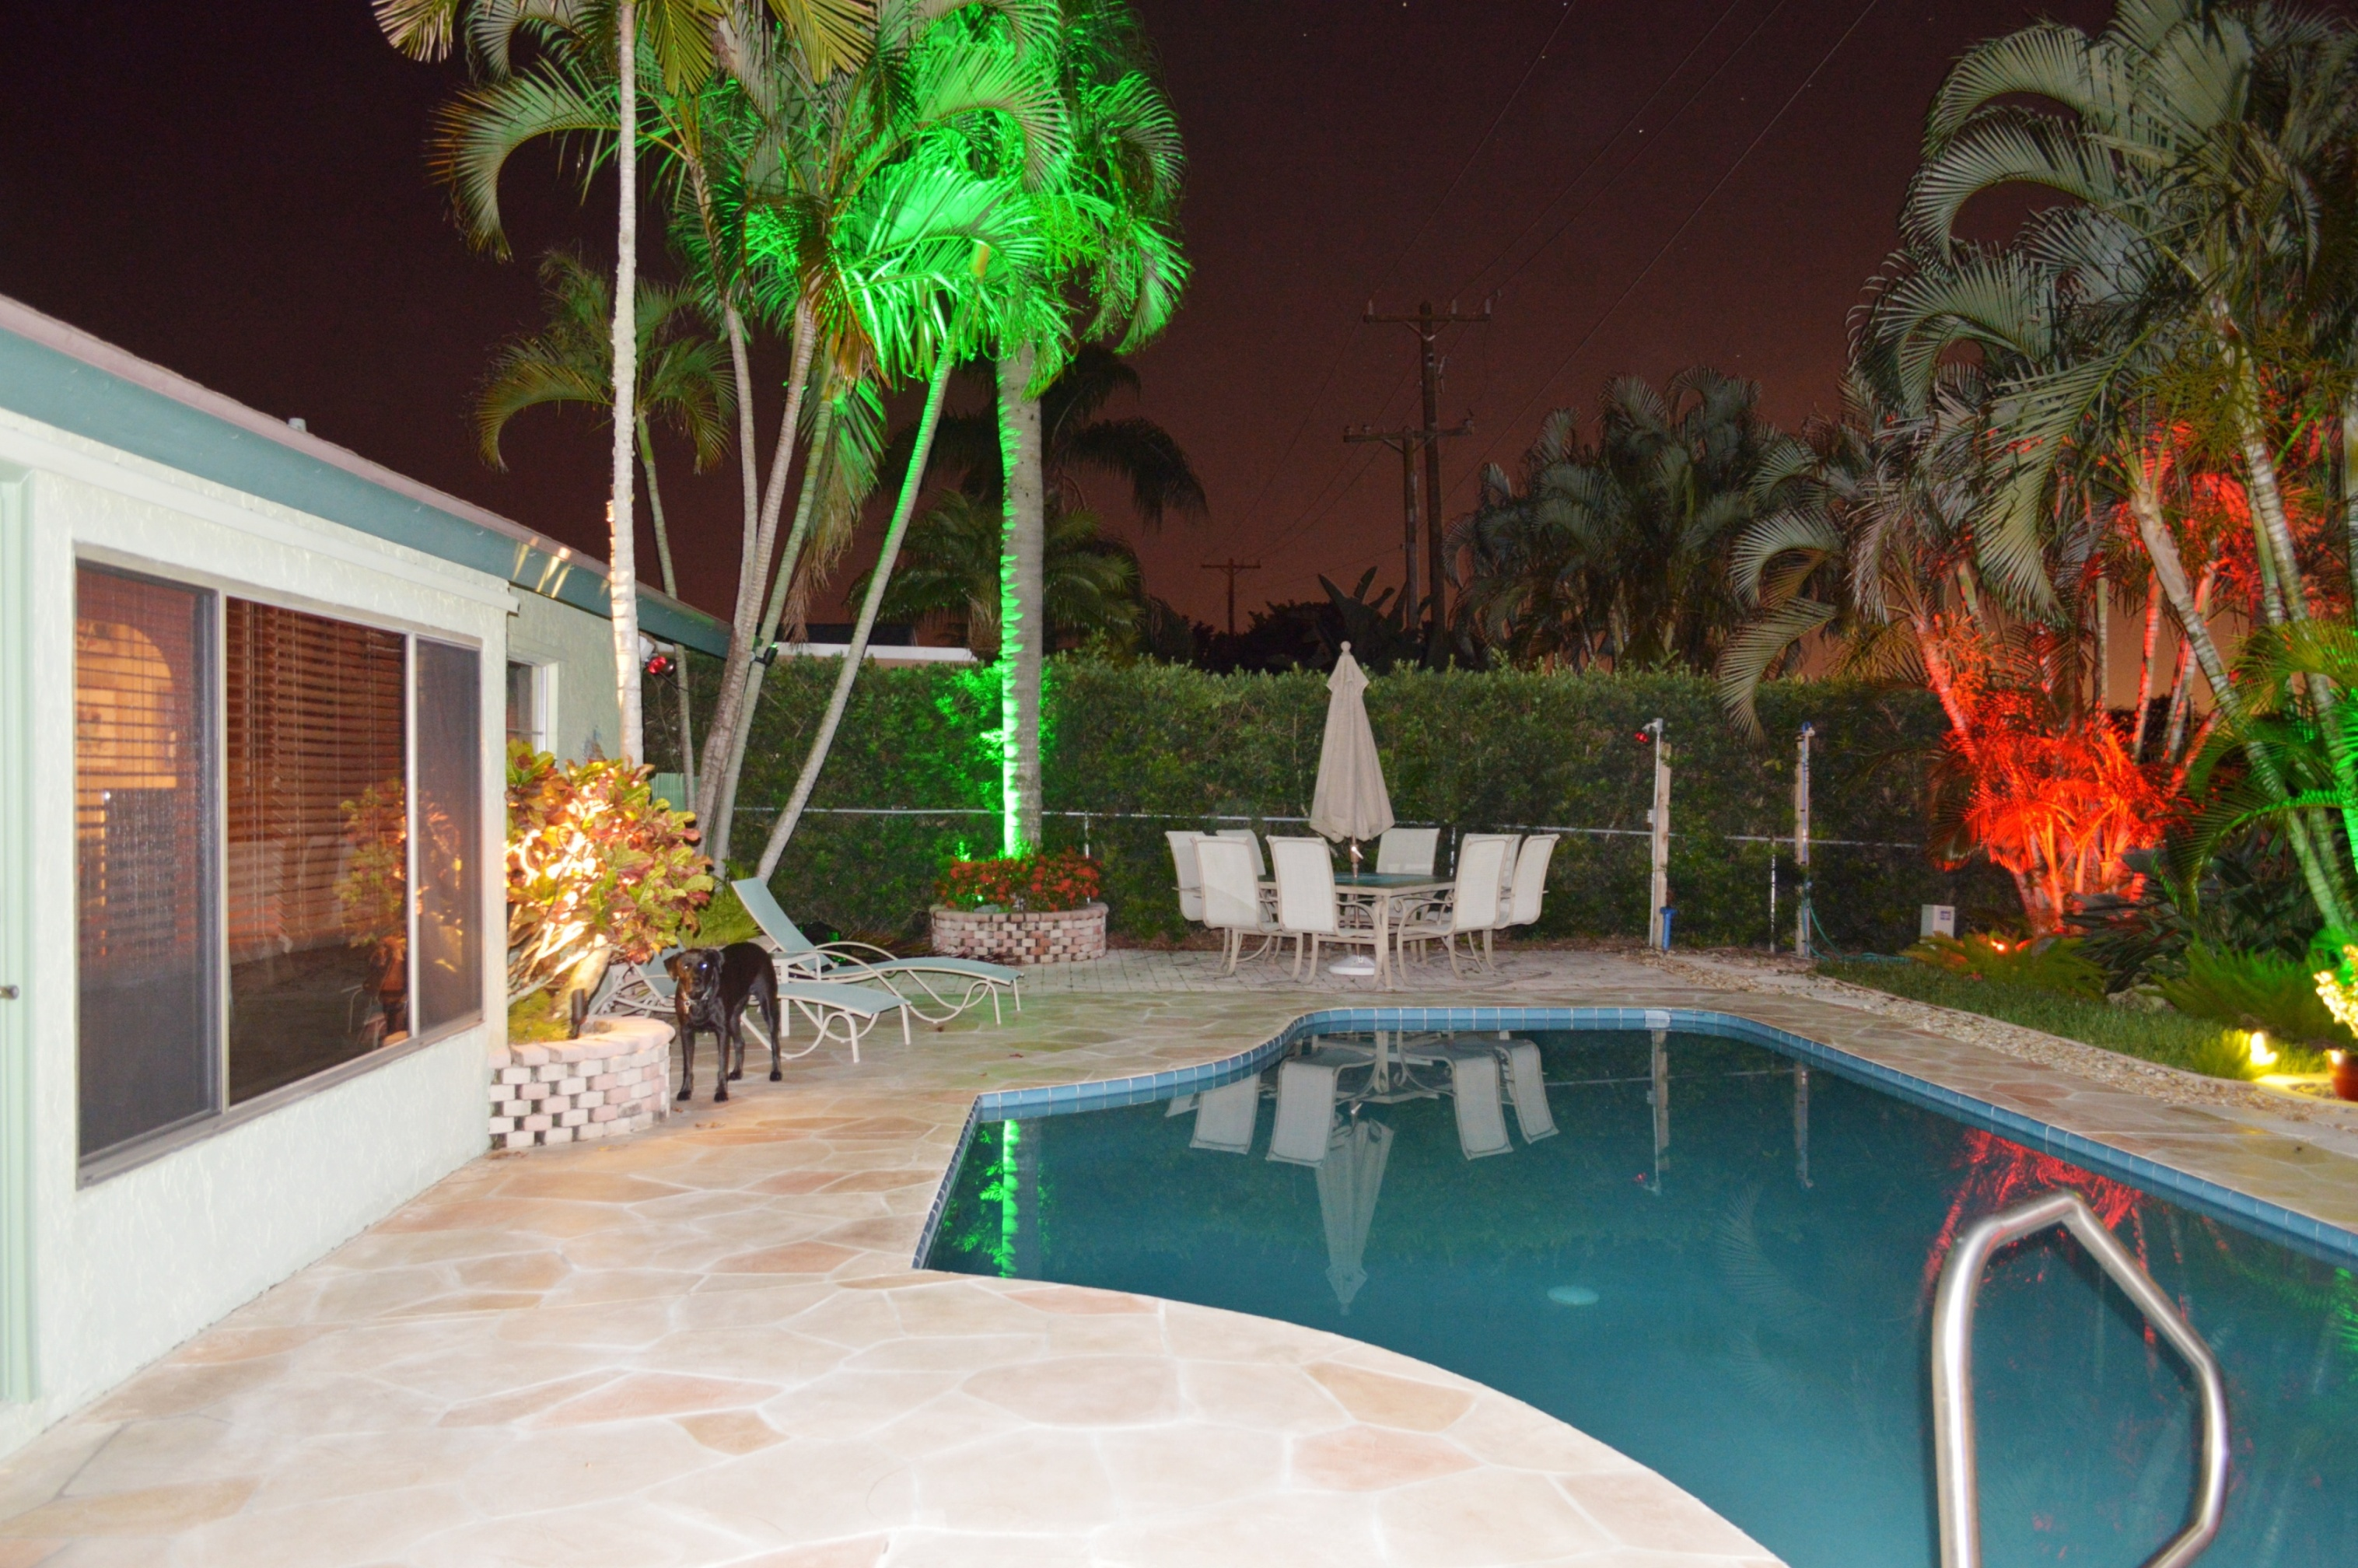 Boynton Beach landscaping lighting 5